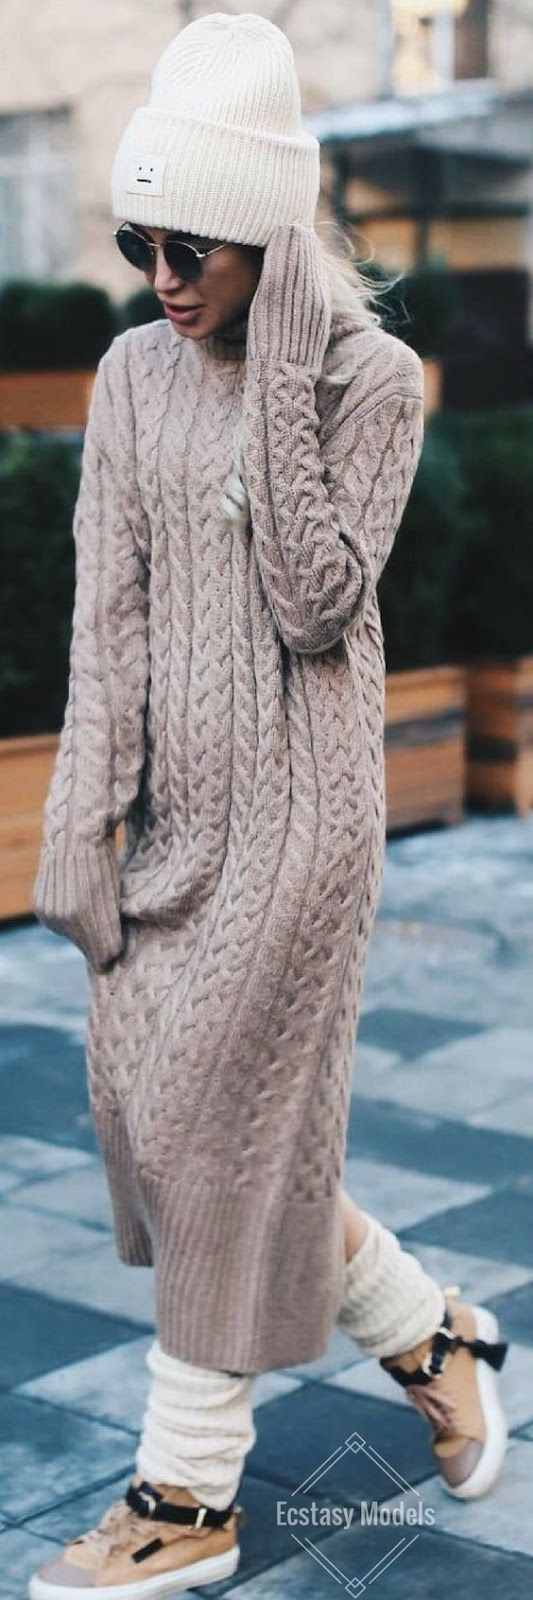 Fashionable Outfit | Cozy Winter Sweater Dress